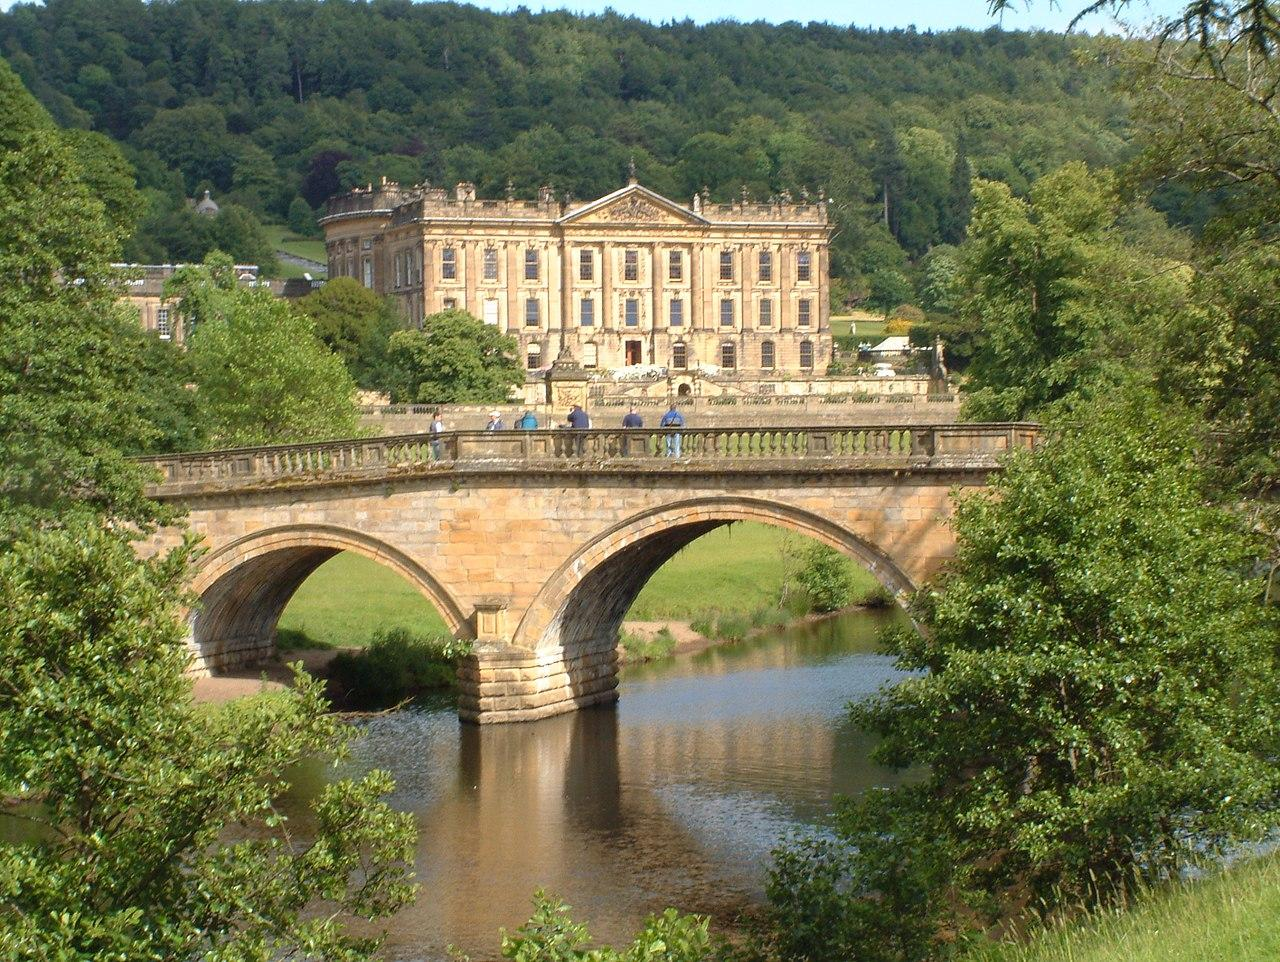 Chatsworth House in Derbyshire the view from the bridge